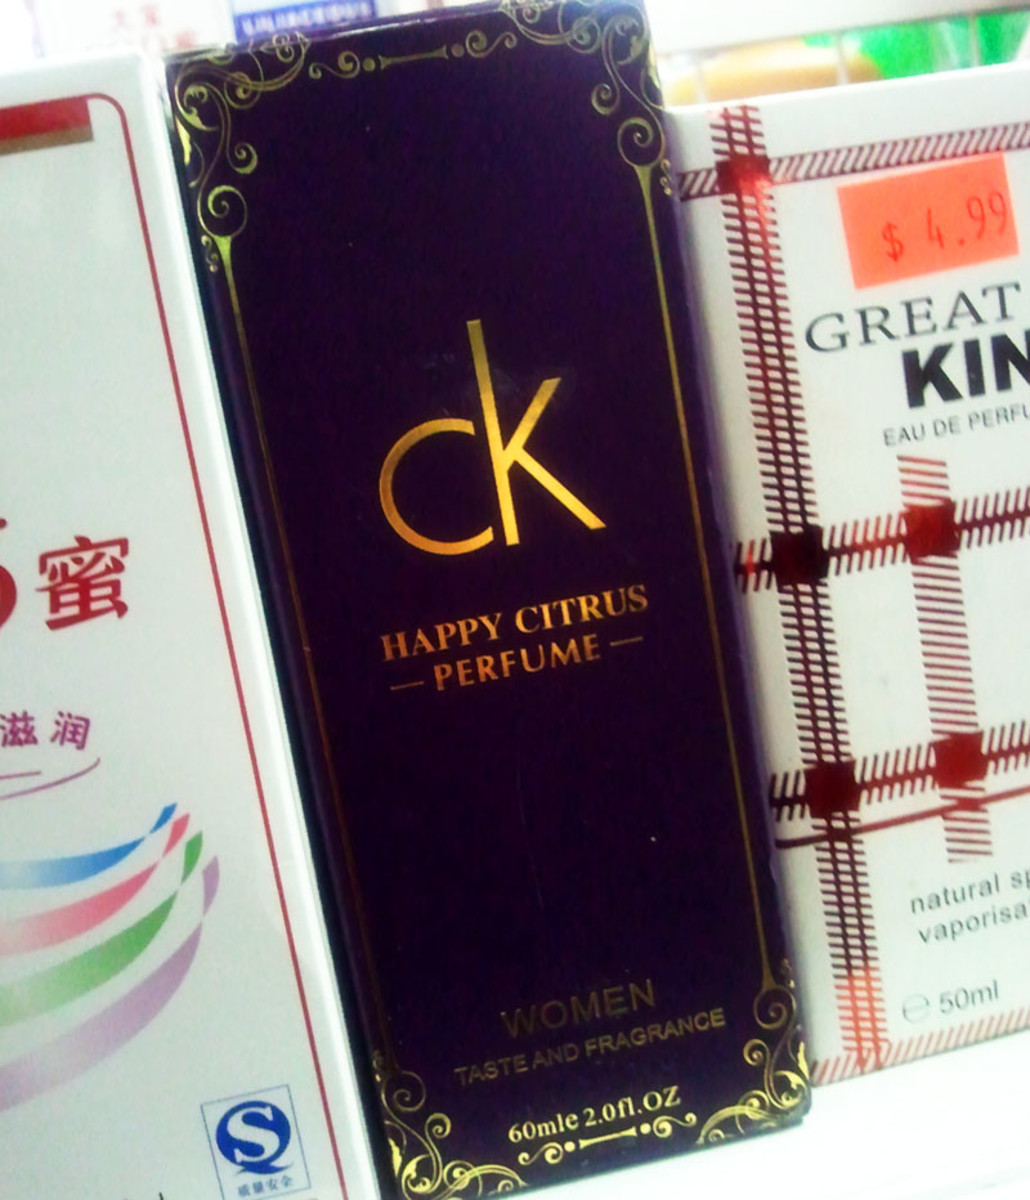 CK-Happy-Citrus-Perfume_Chinatown.jpg